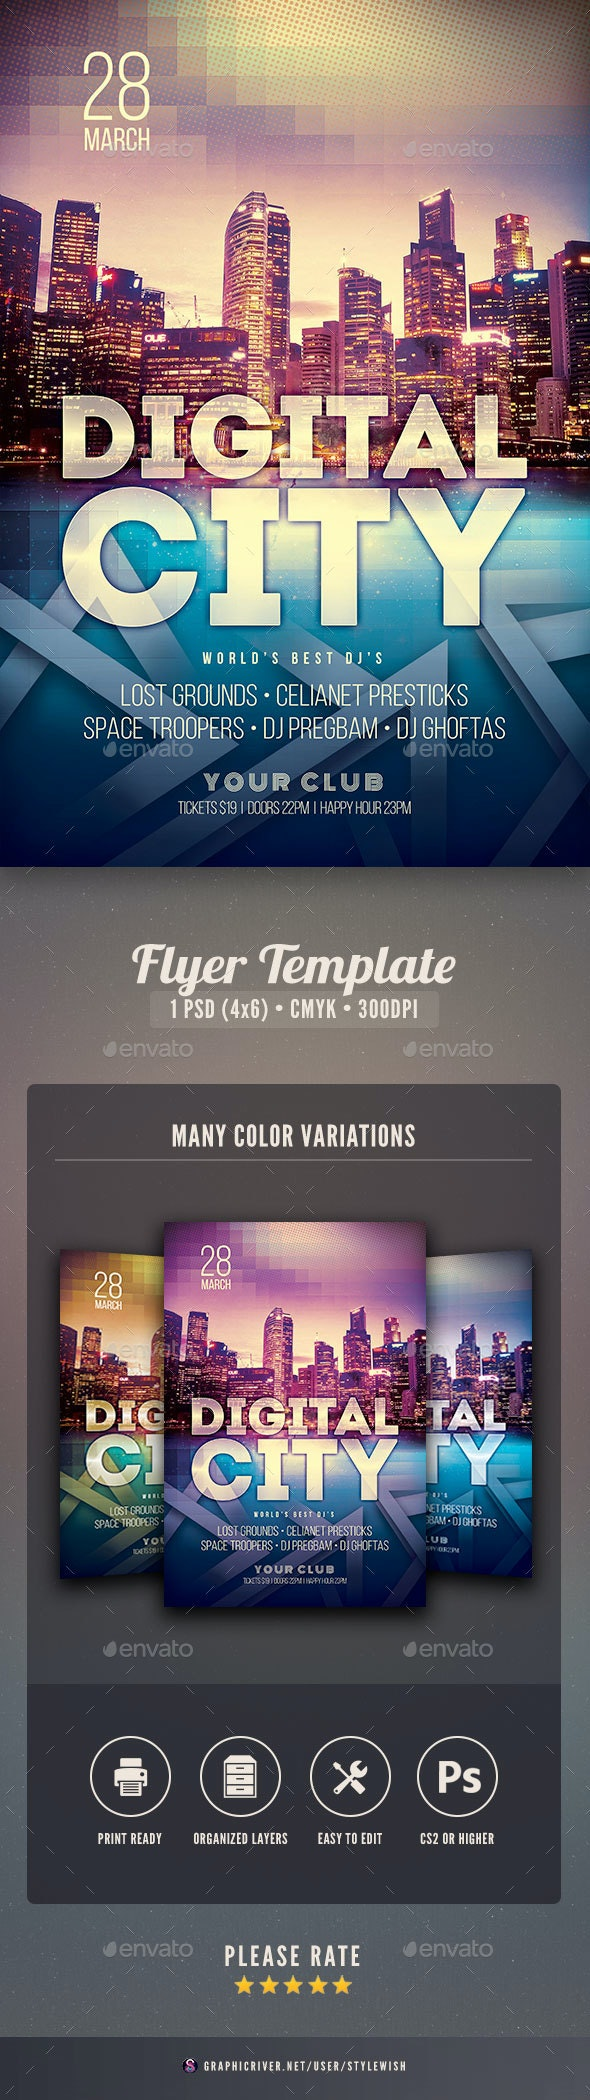 Digital City Flyer - Clubs & Parties Events